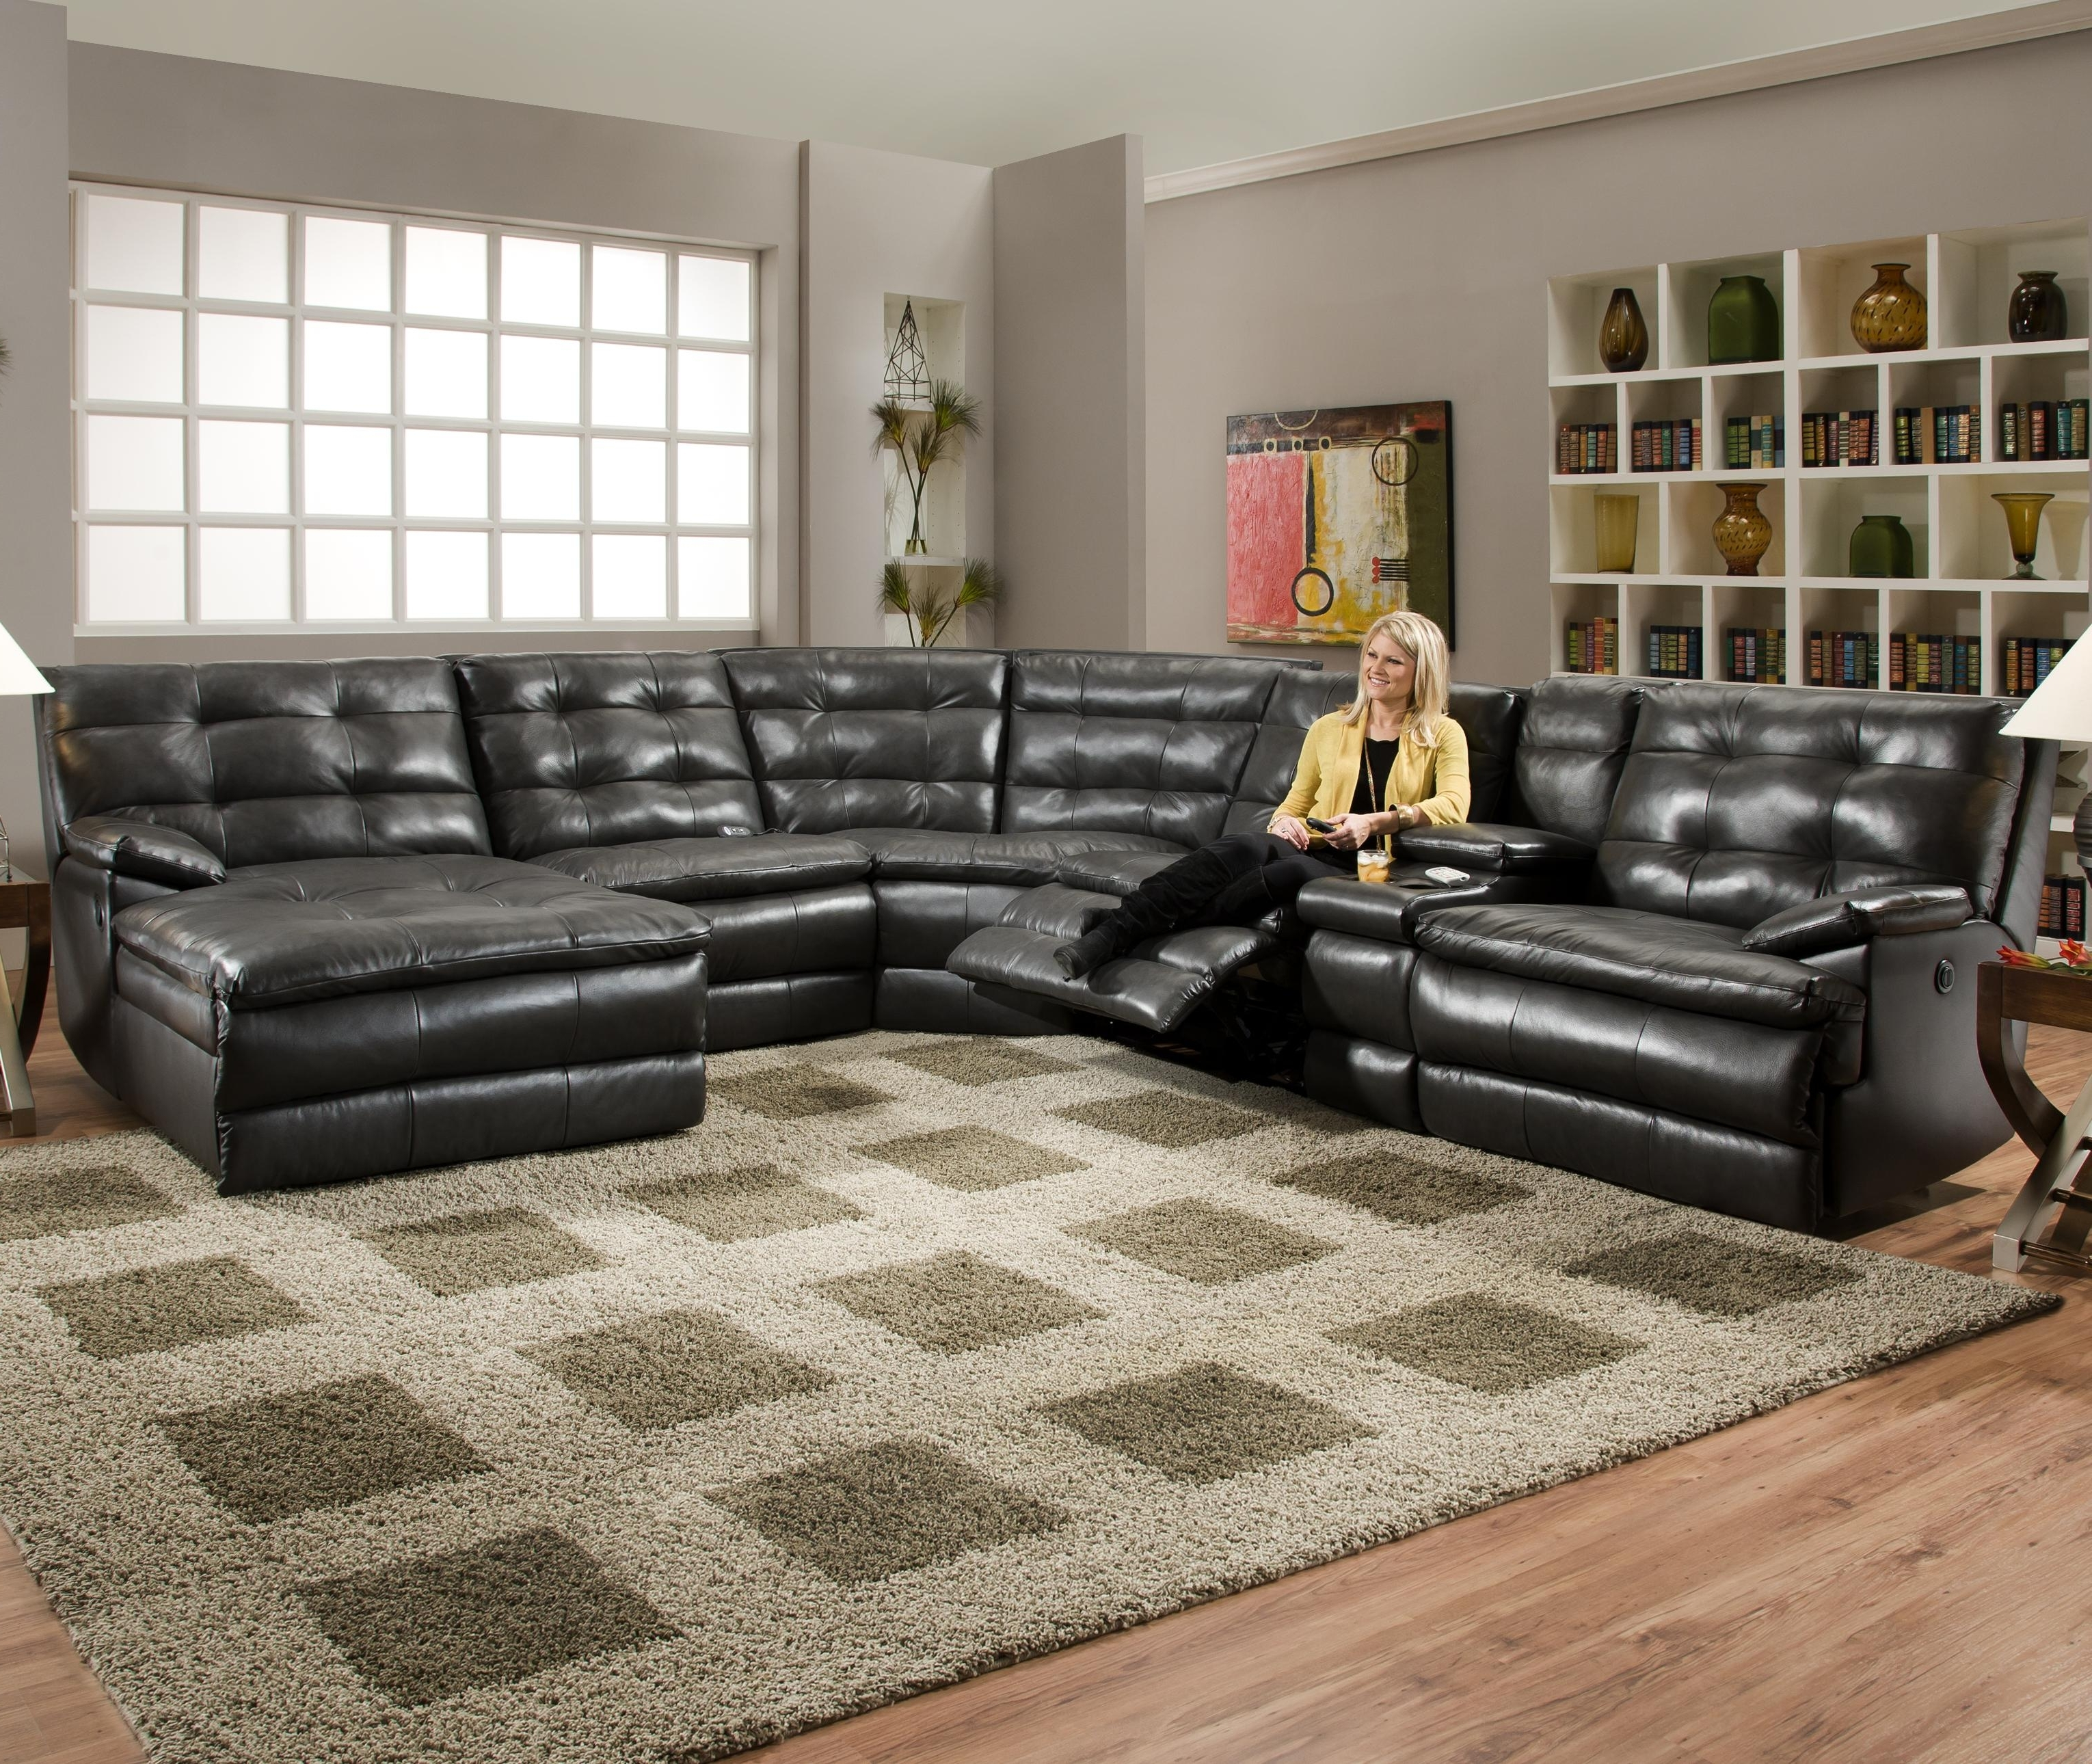 Luxurious Tufted Leather Sectional Sofa In Classy Black Color With Intended For Well Known Dayton Ohio Sectional Sofas (View 6 of 20)